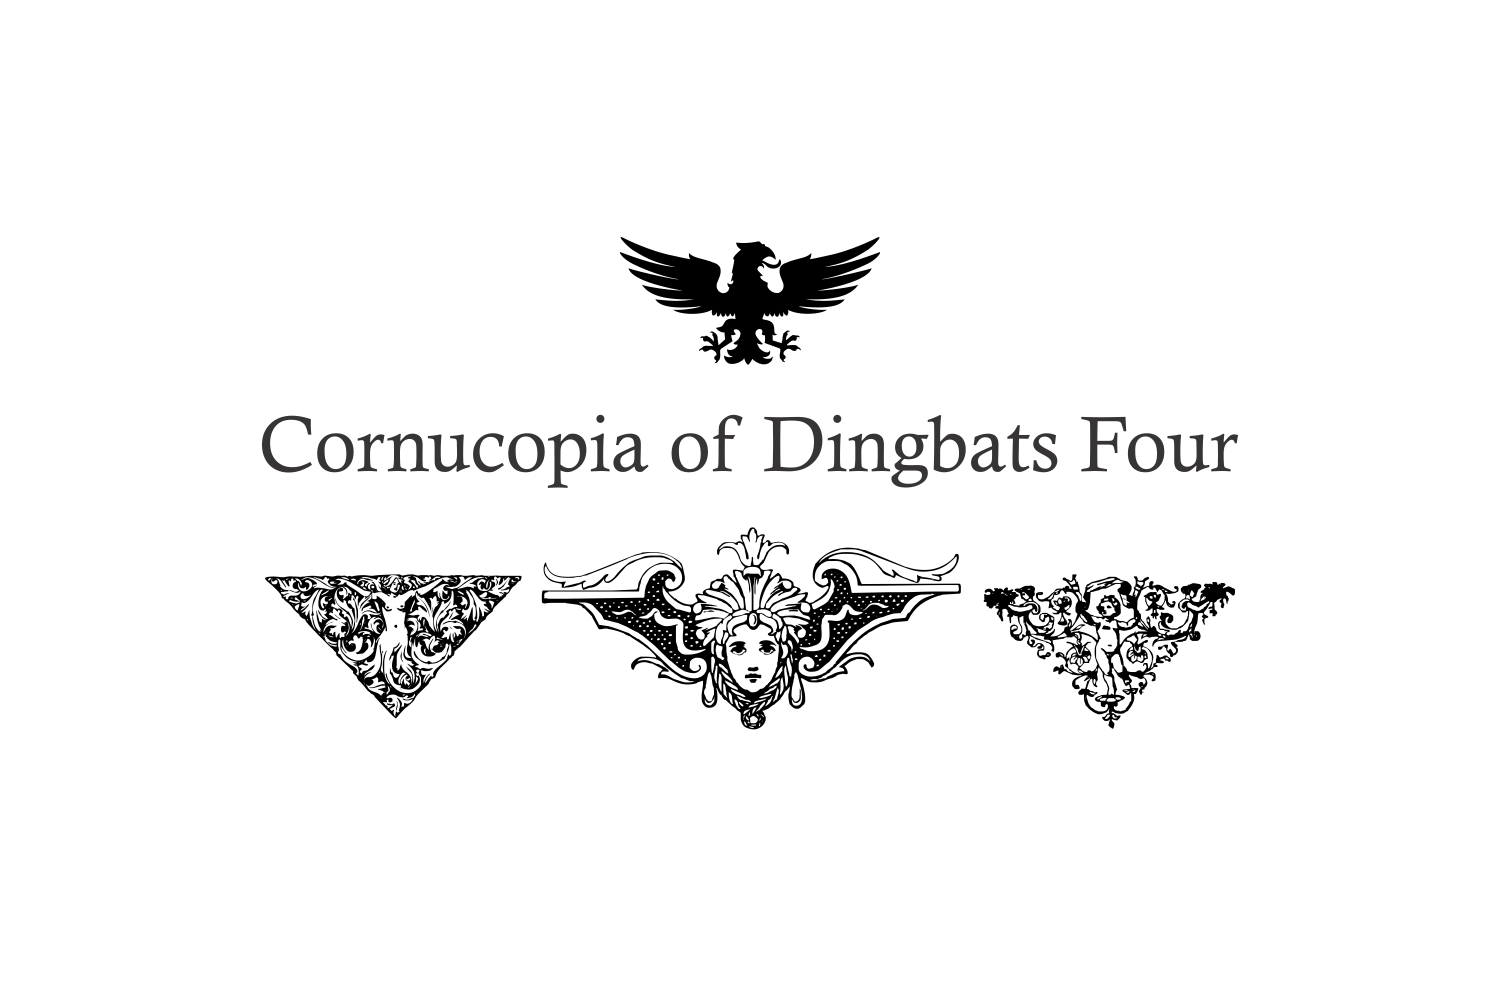 Cornucopia of Dingbats Four example image 2